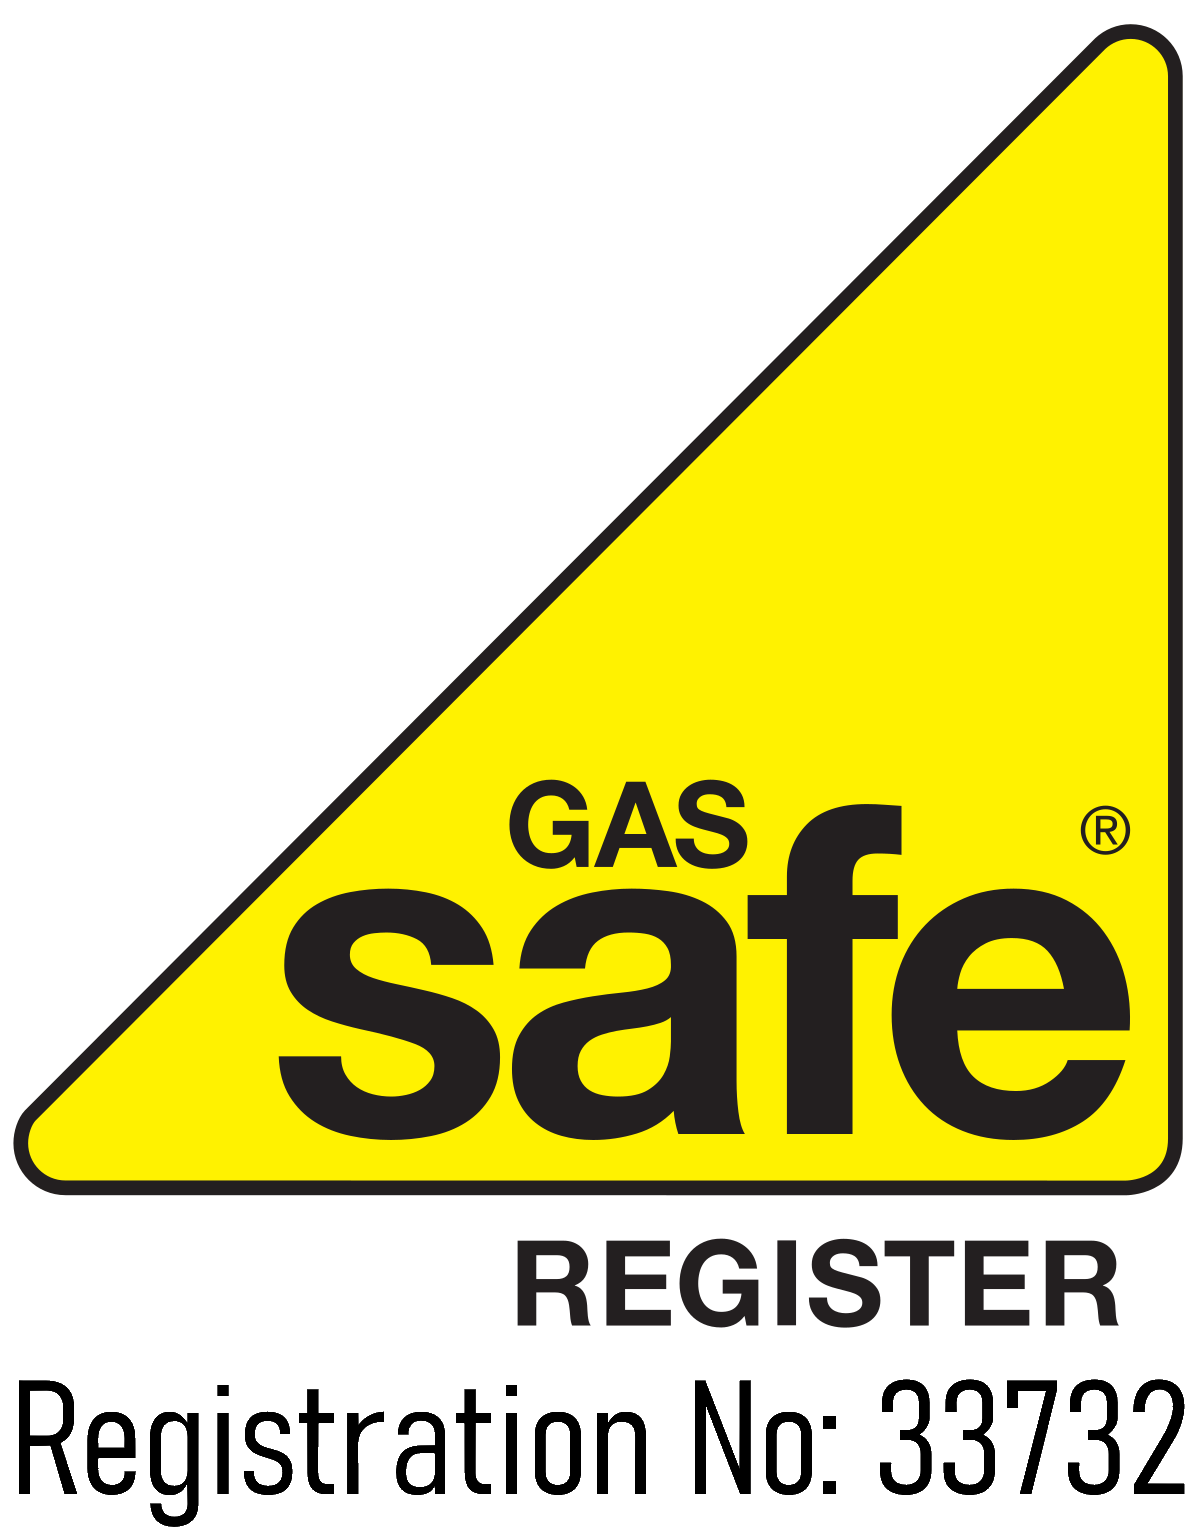 Gas Safety Registration